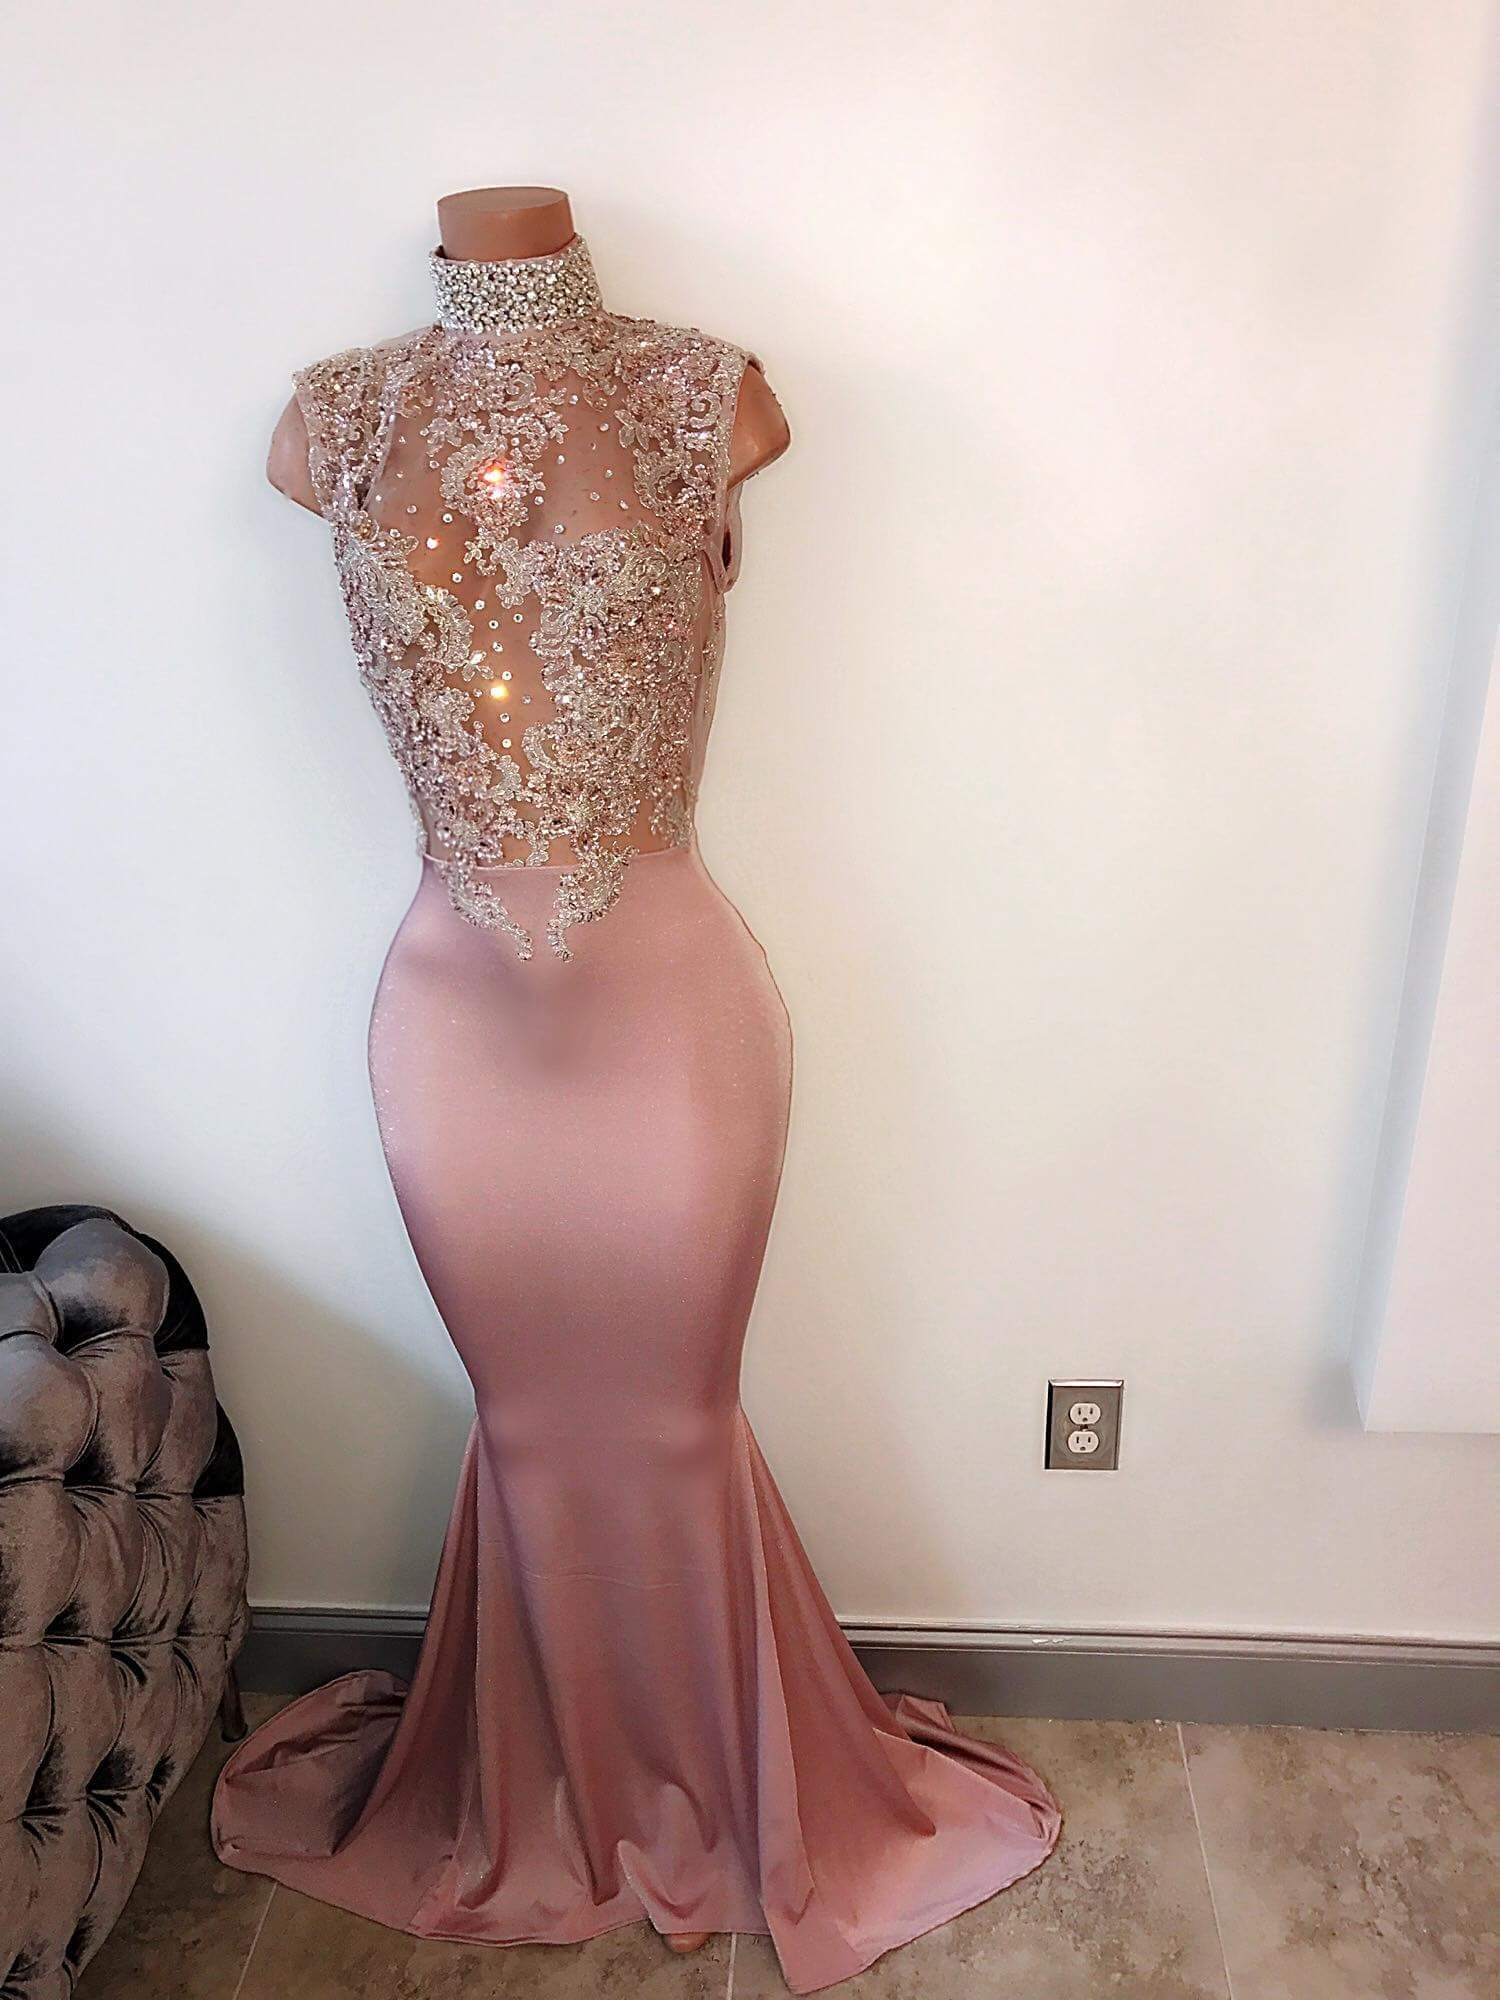 Pin By Shardae On Love It Pinterest Prom Dresses Prom And Dresses